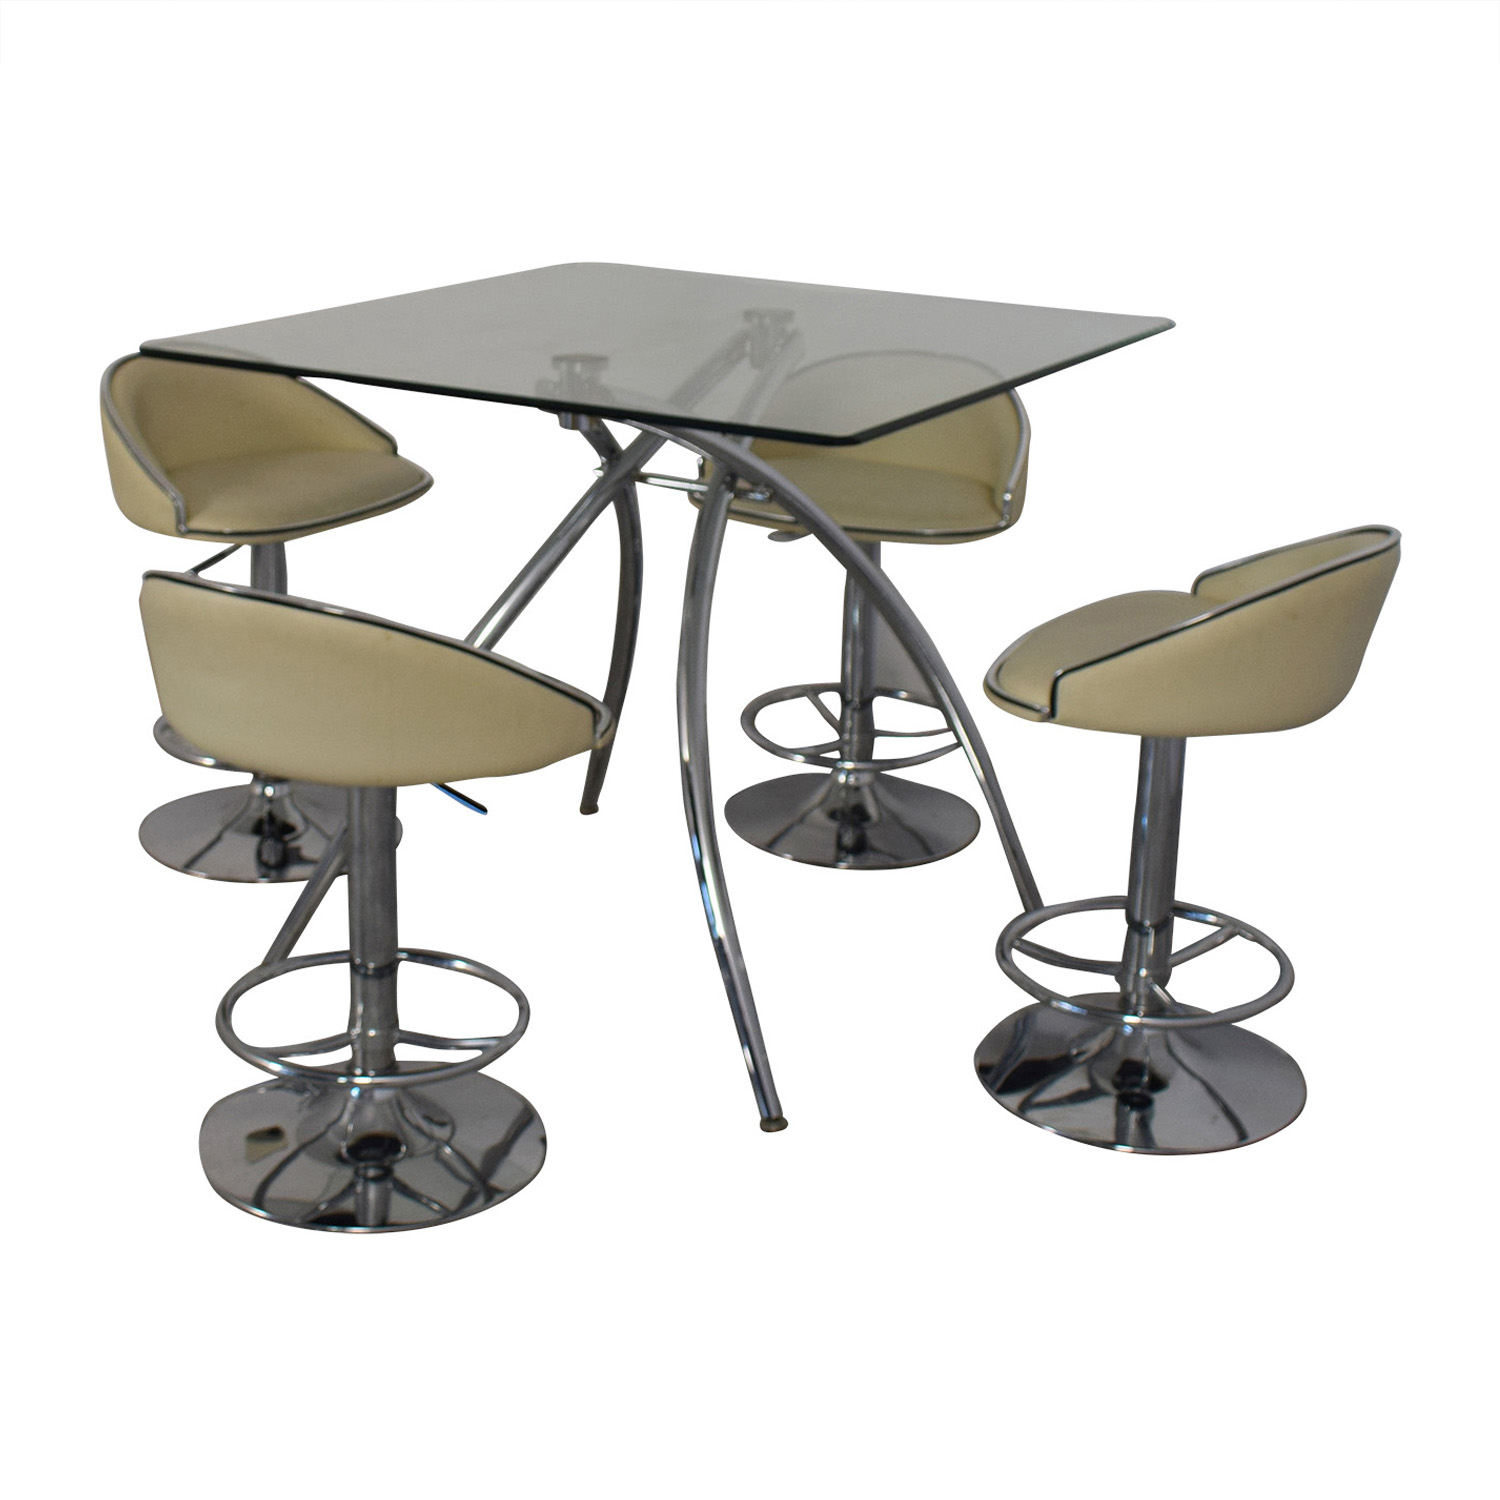 Chintaly Imports Chintaly Imports Adjustable Bar Stools and Glass Table Set coupon